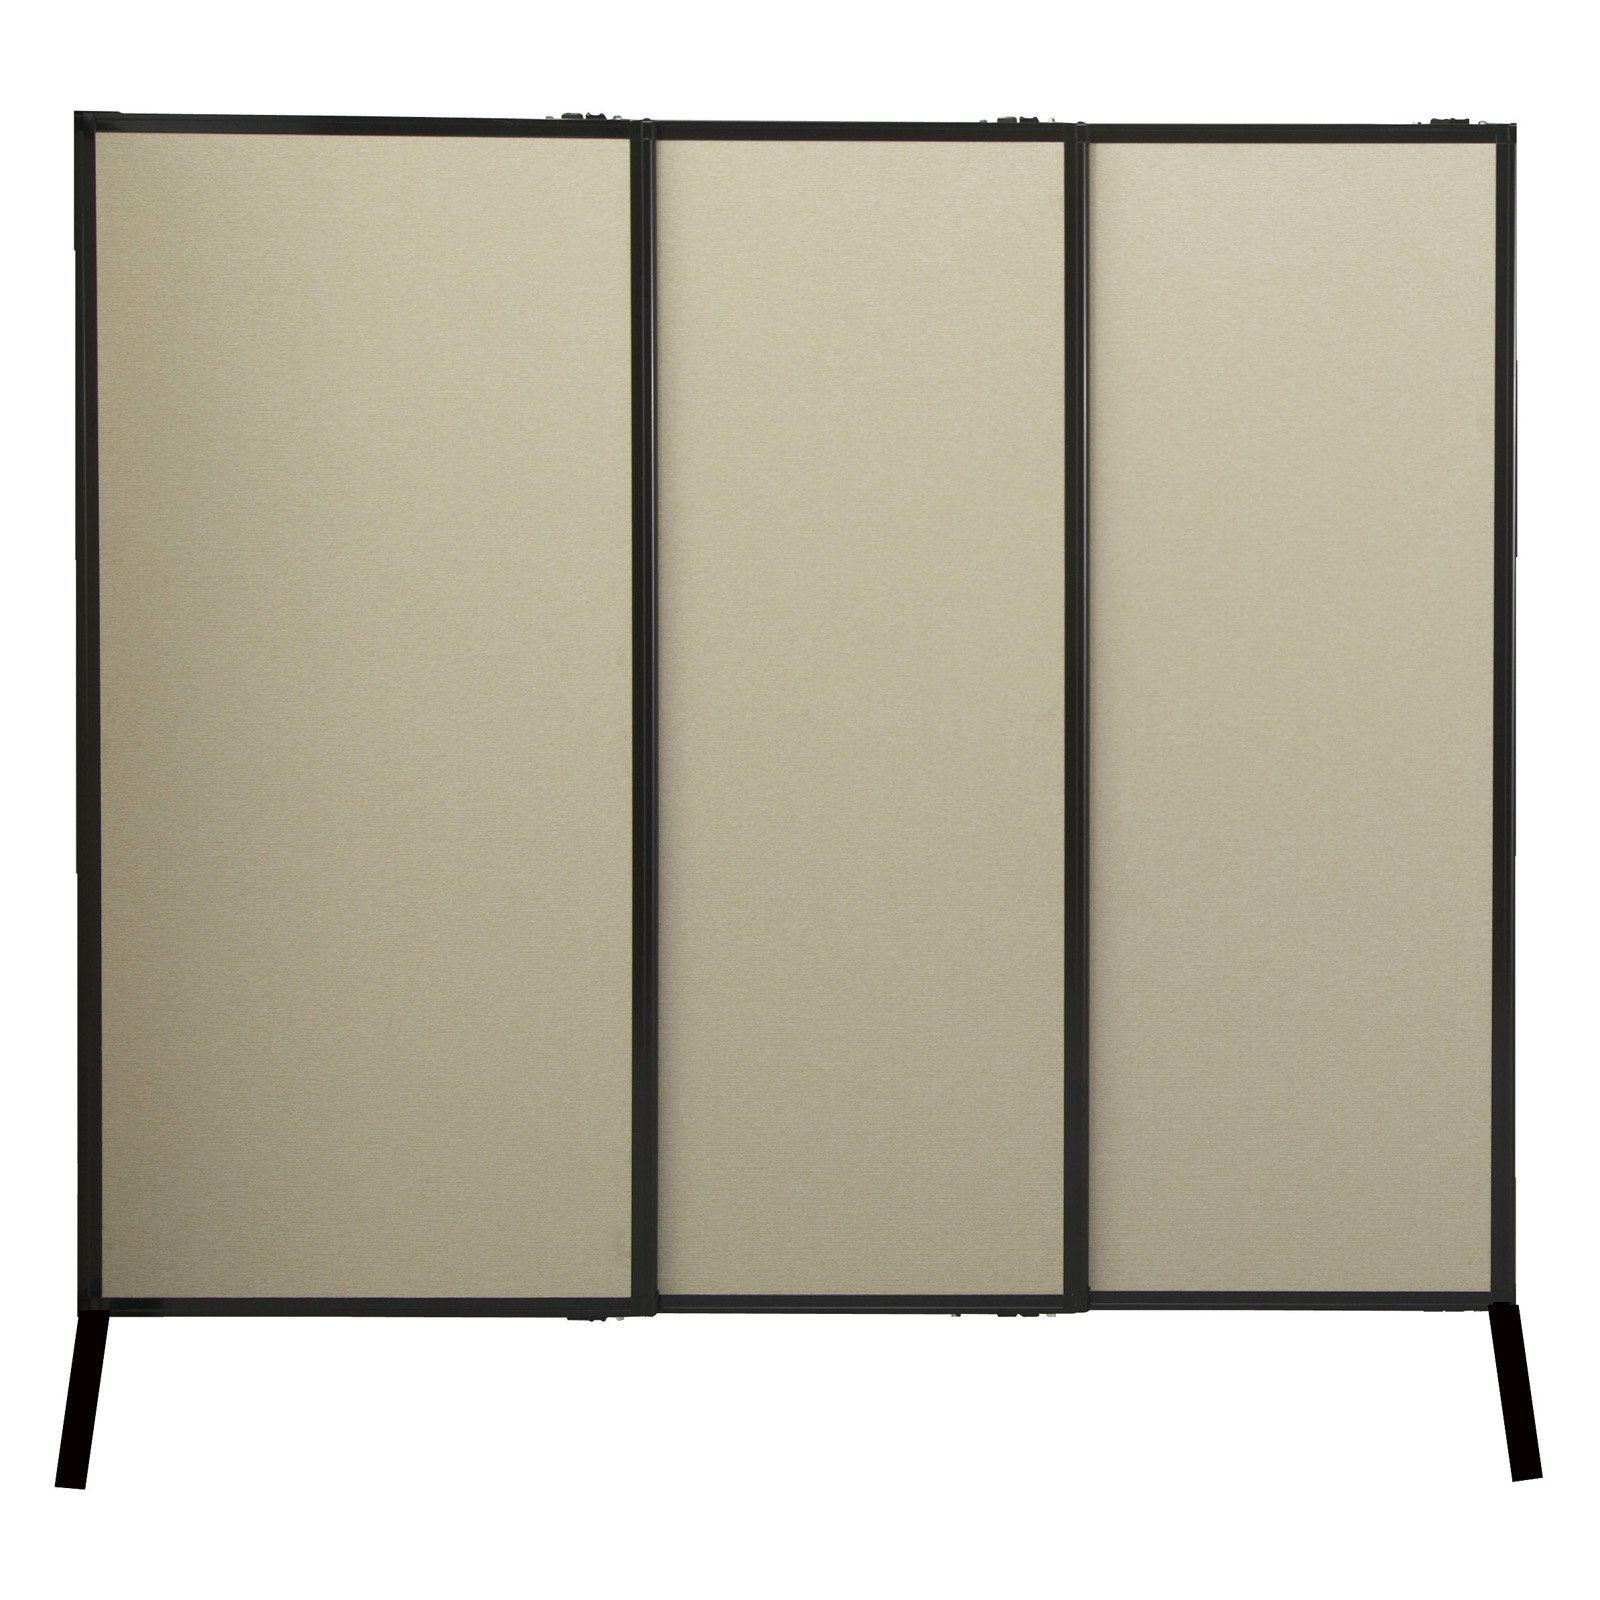 office room dividers ikea. Office Room Dividers Ikea S